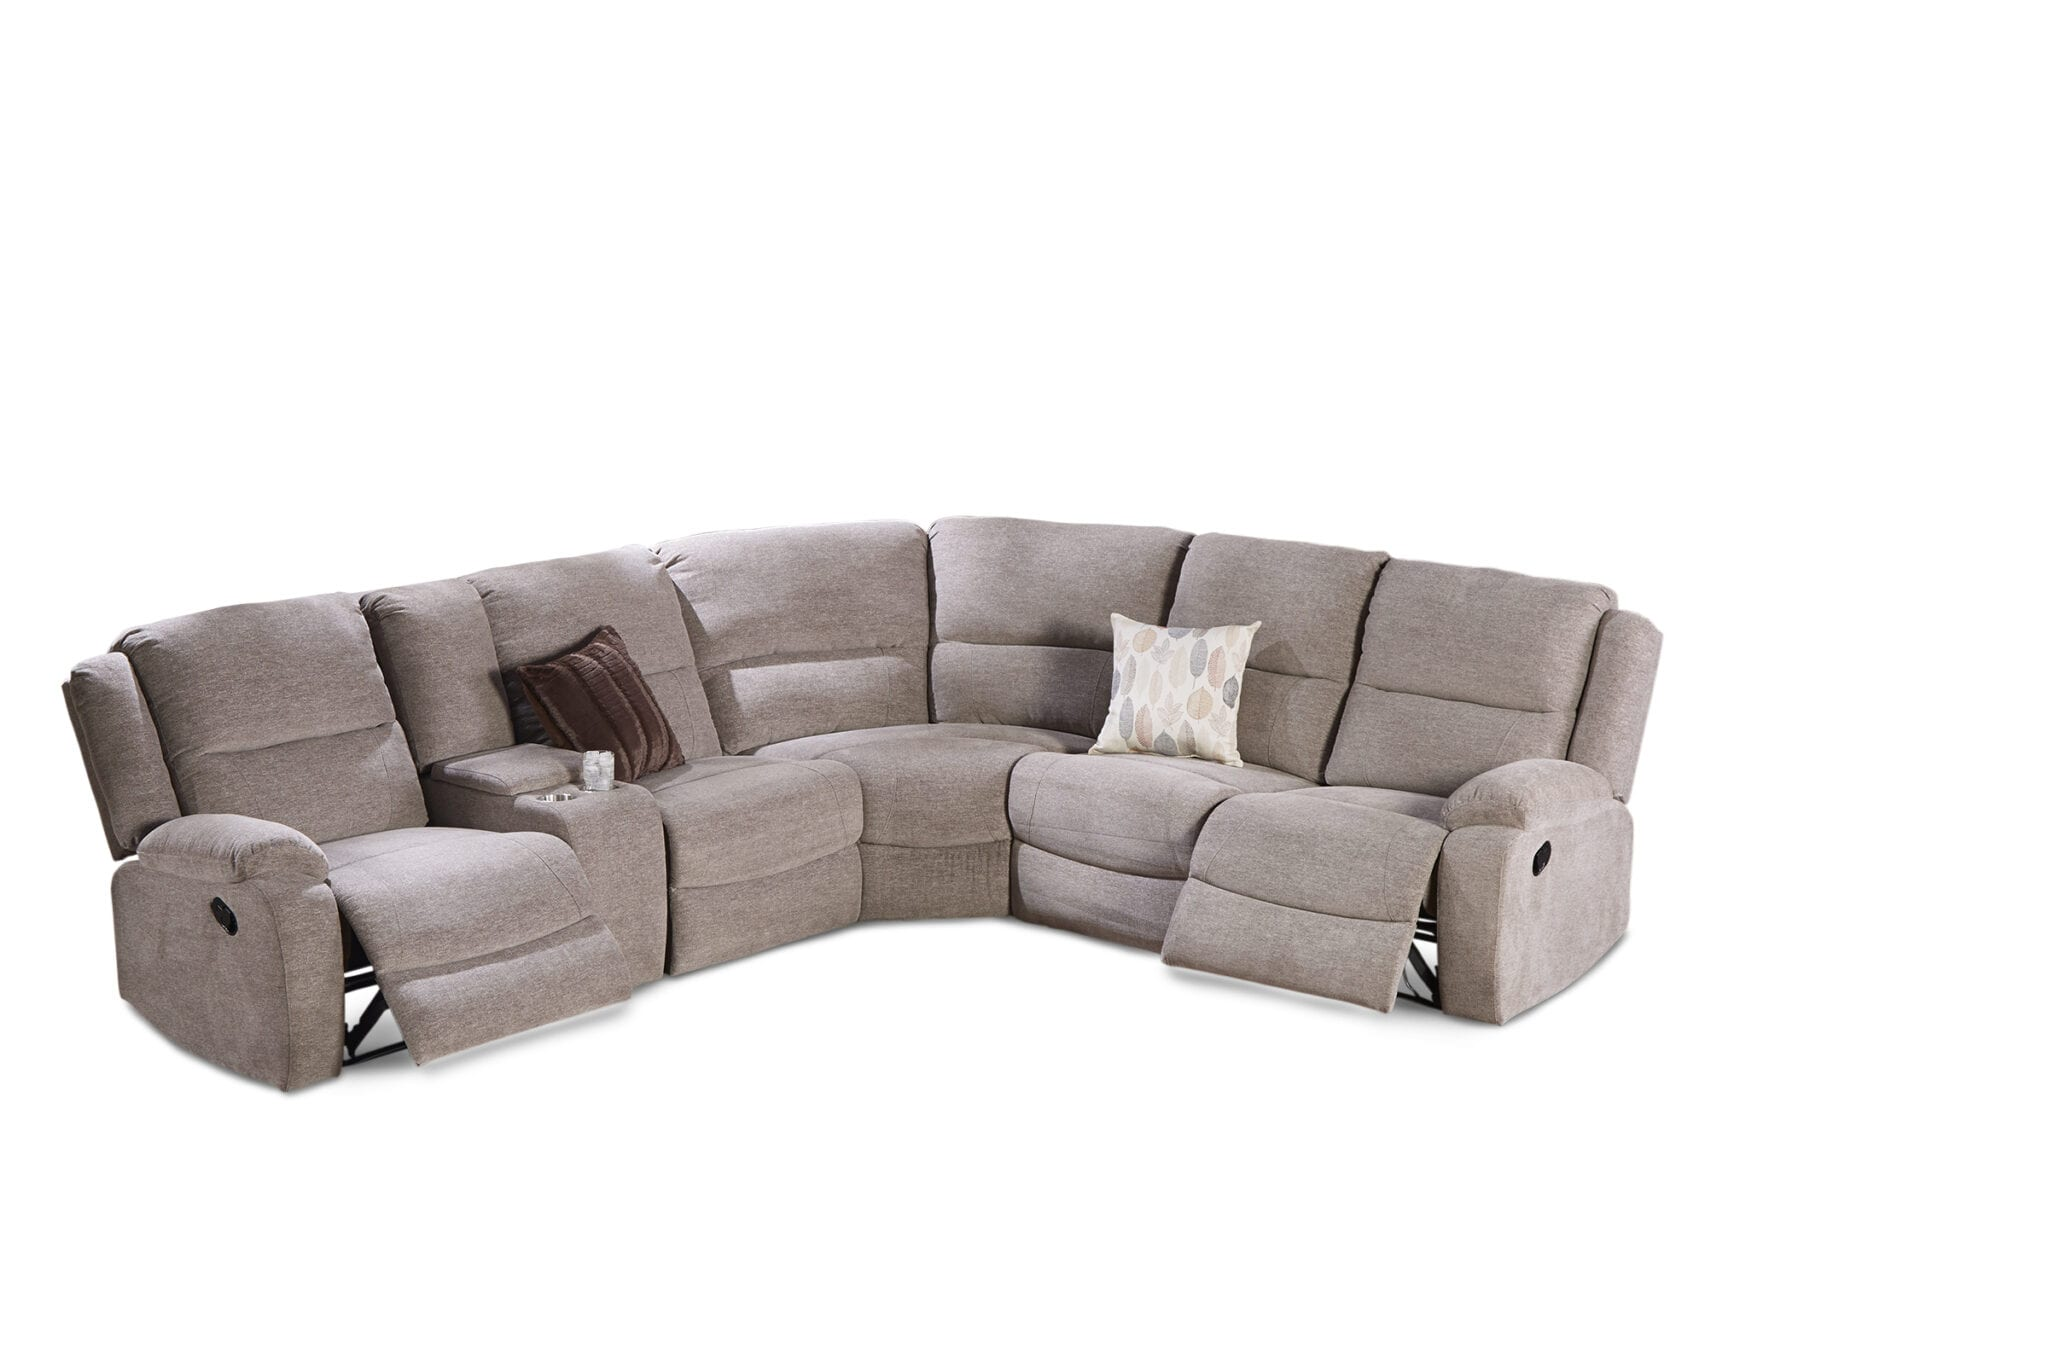 This Signature Deign By Ashley 90 Moreland Sofa Is Just 314 99 After Bonus Coupon